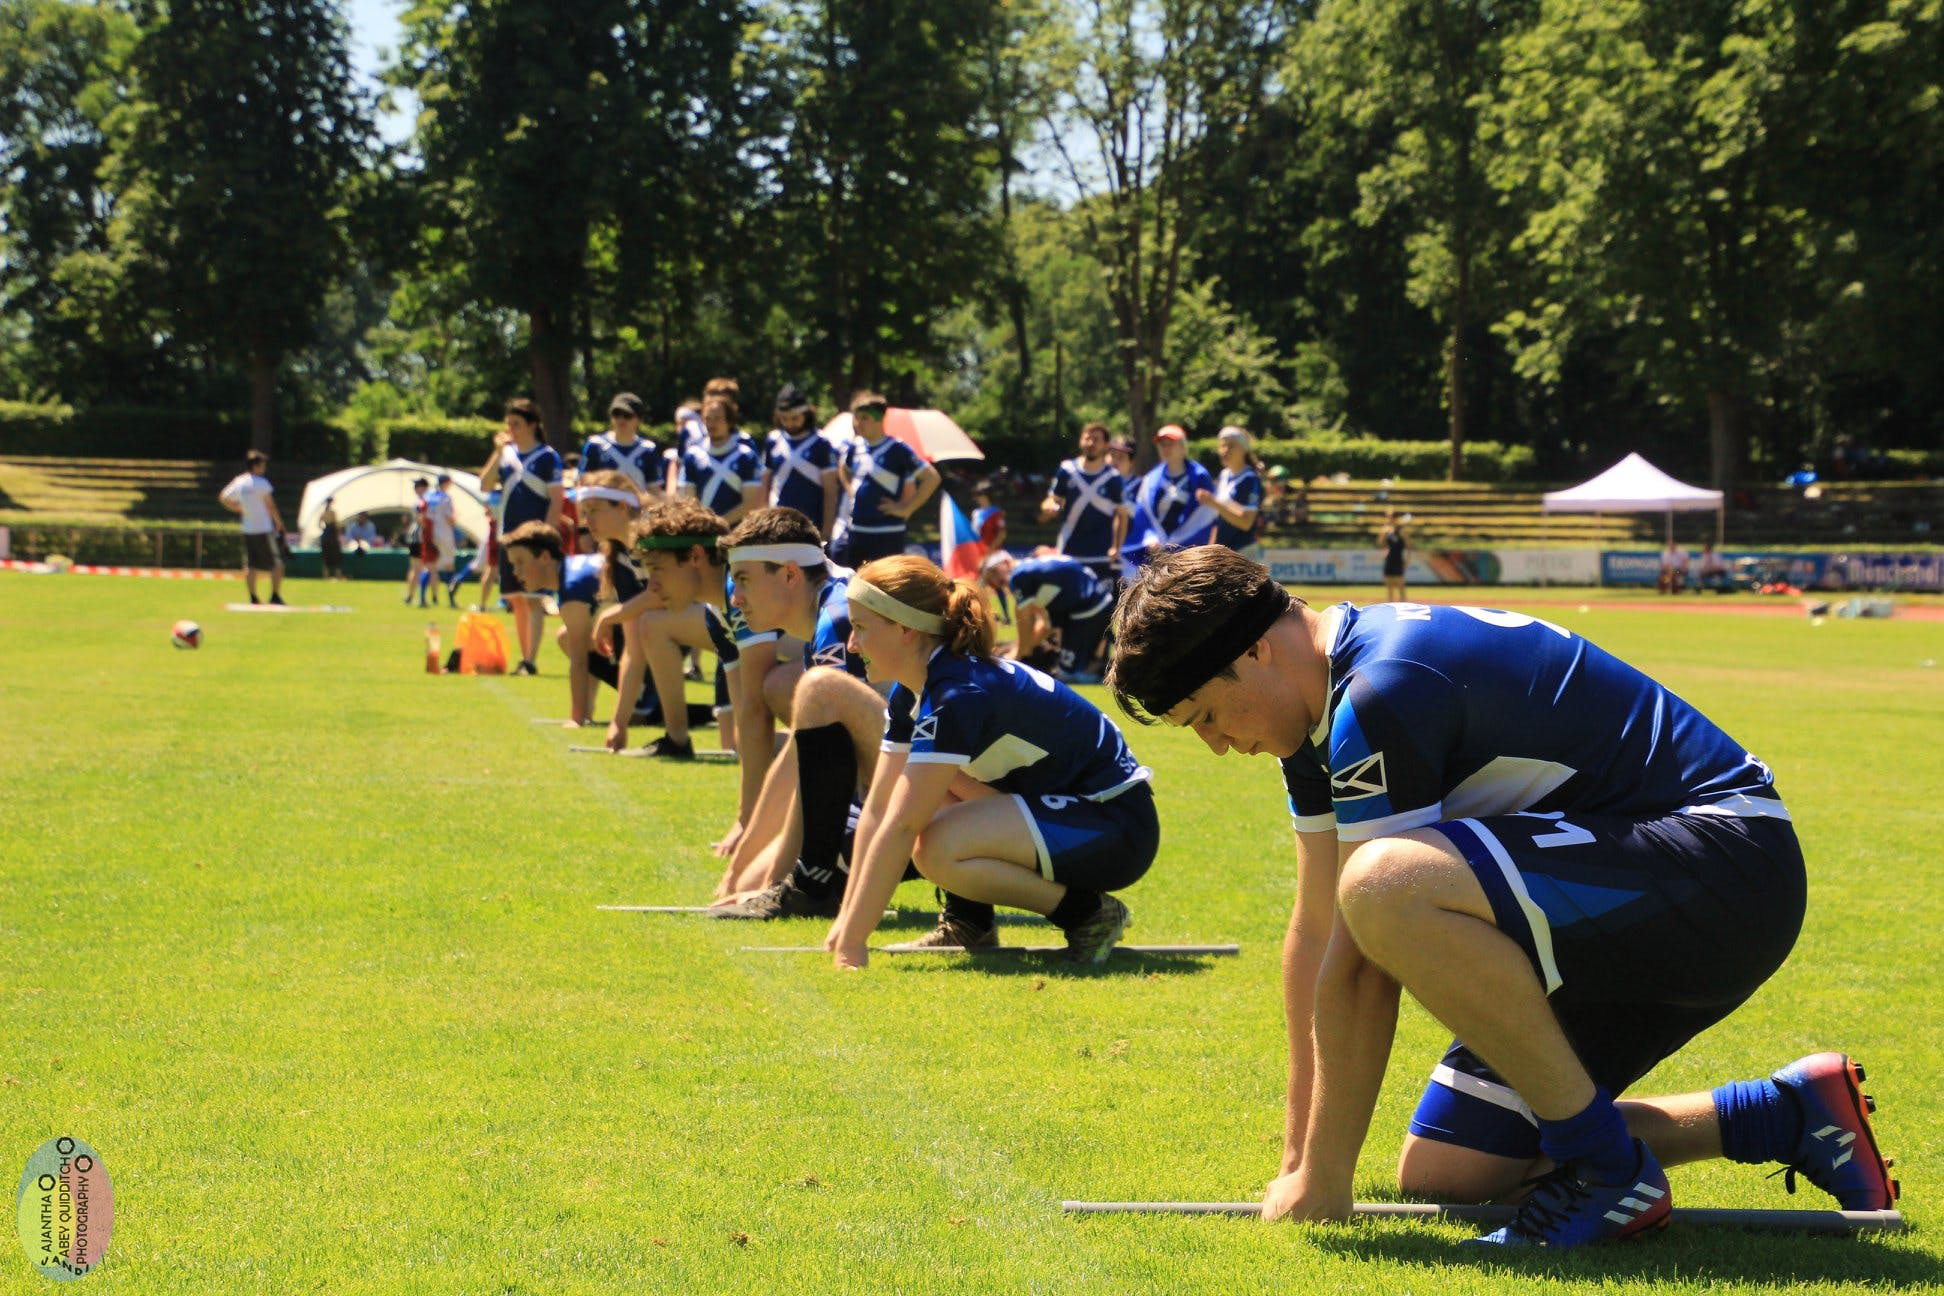 Scottish national team taking a kneel within 'brooms down' at European Games 2019 in Bamberg, Germany.